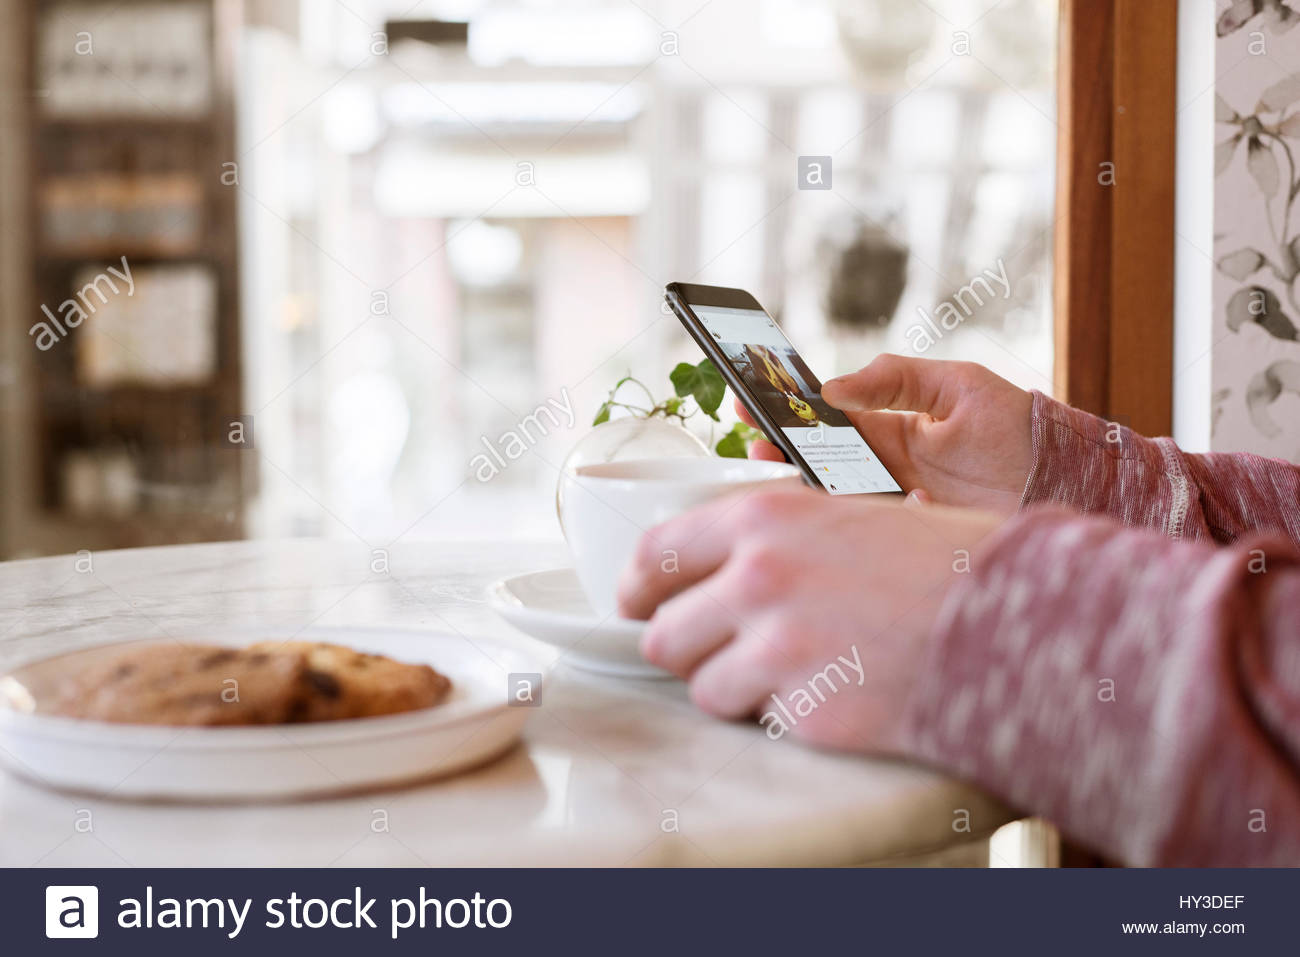 Sweden, Man sitting at table and using smart phone - Stock Image